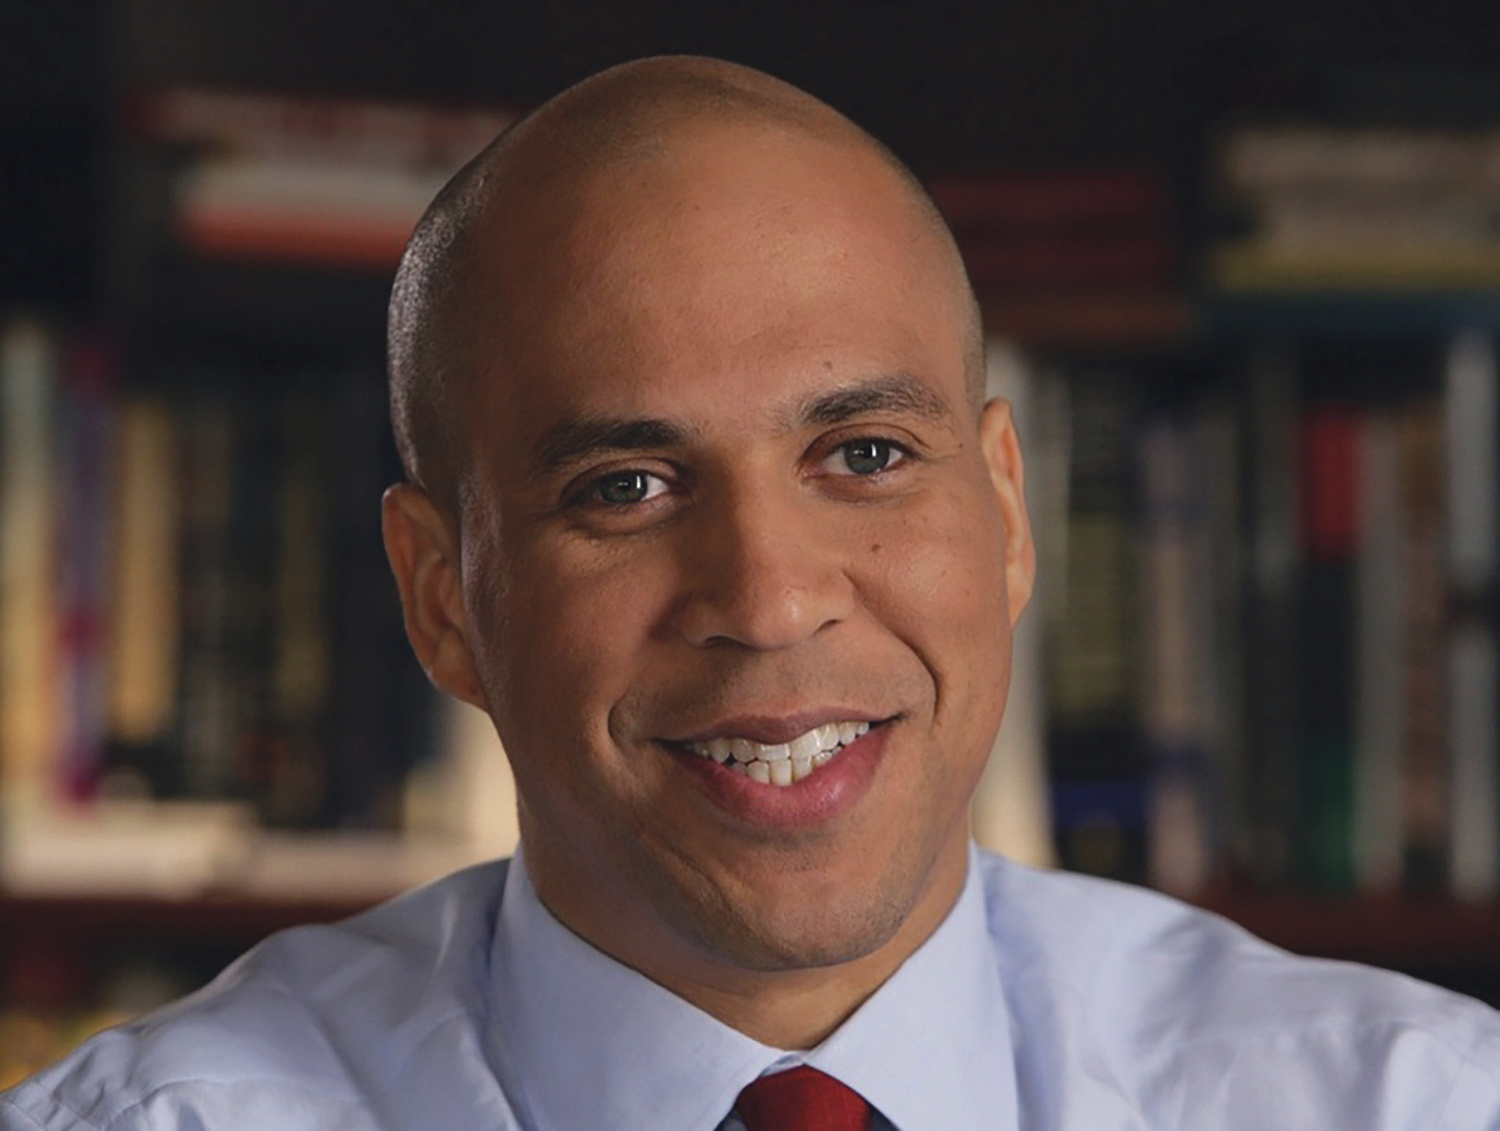 Sen. Booker has already made stops in key primary states over the last few months. He now plans to travel more extensively as he joins the most diverse presidential field in American history.